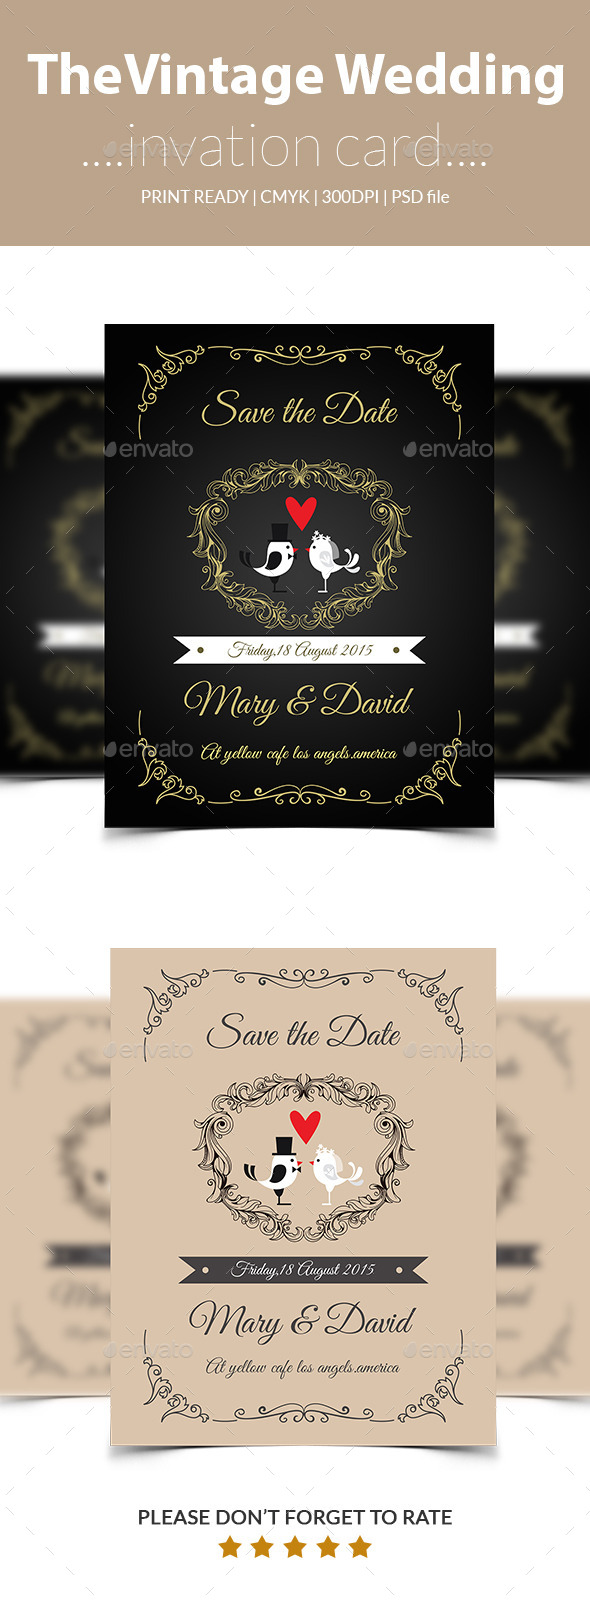 Vintage wedding inviation card